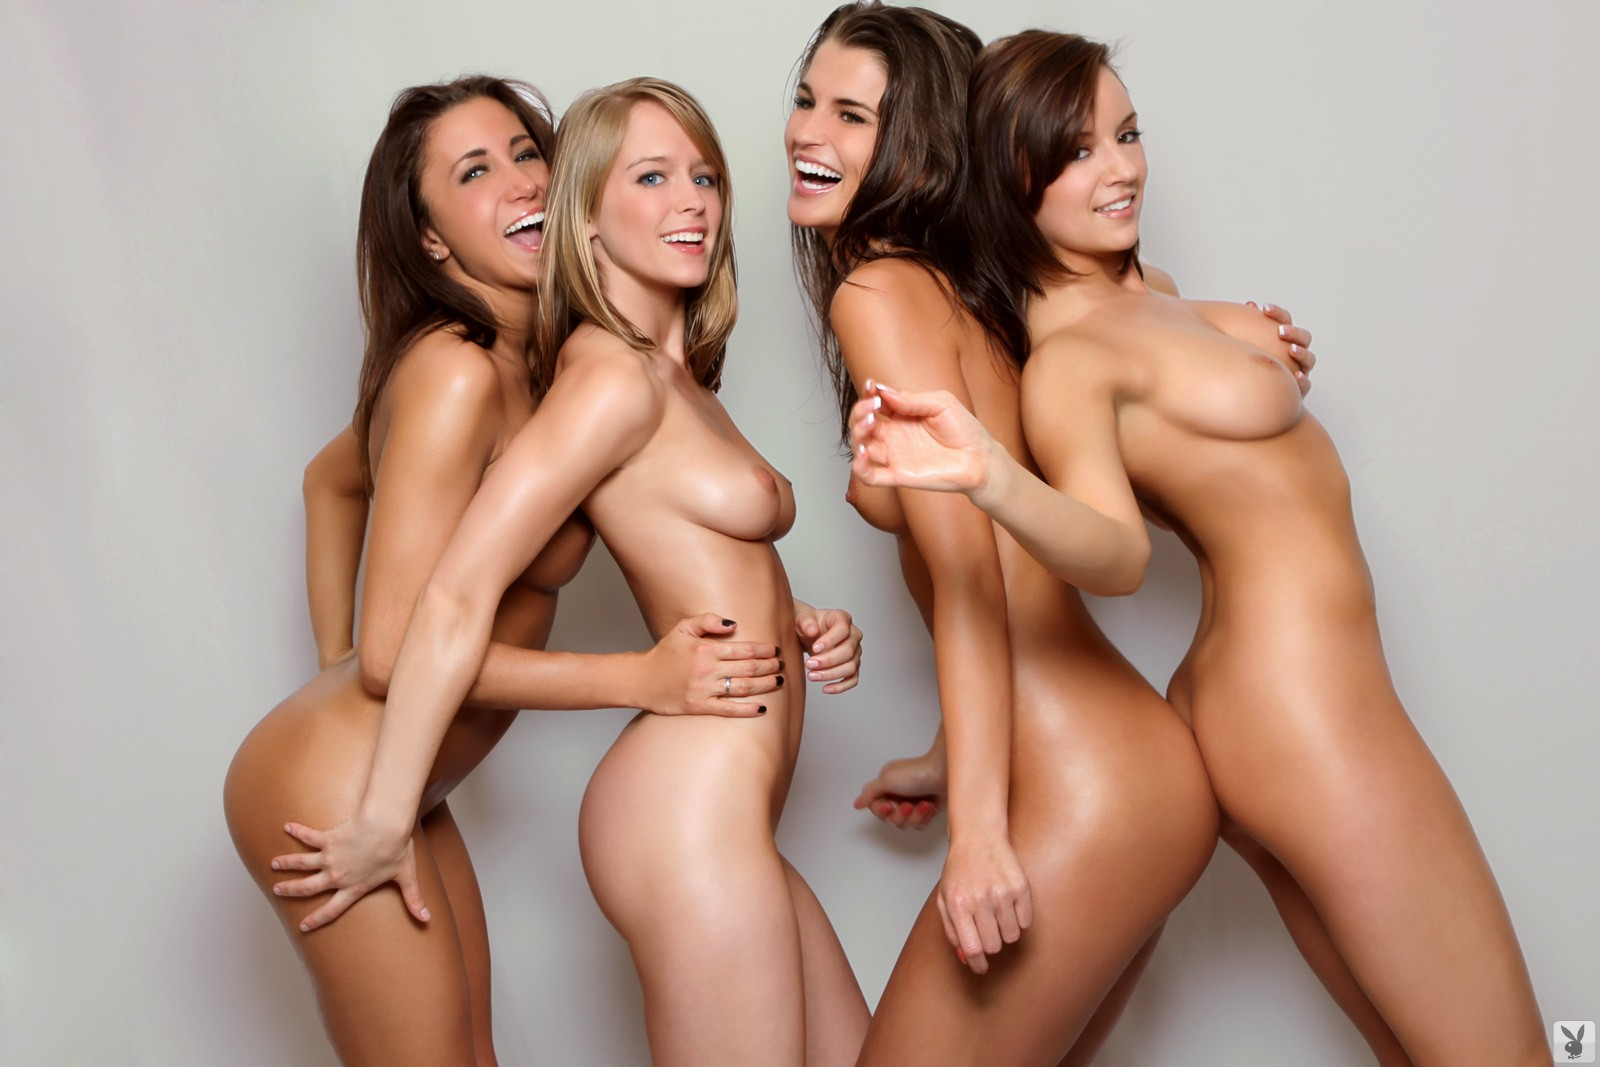 Hot naked pornstar chicks #9